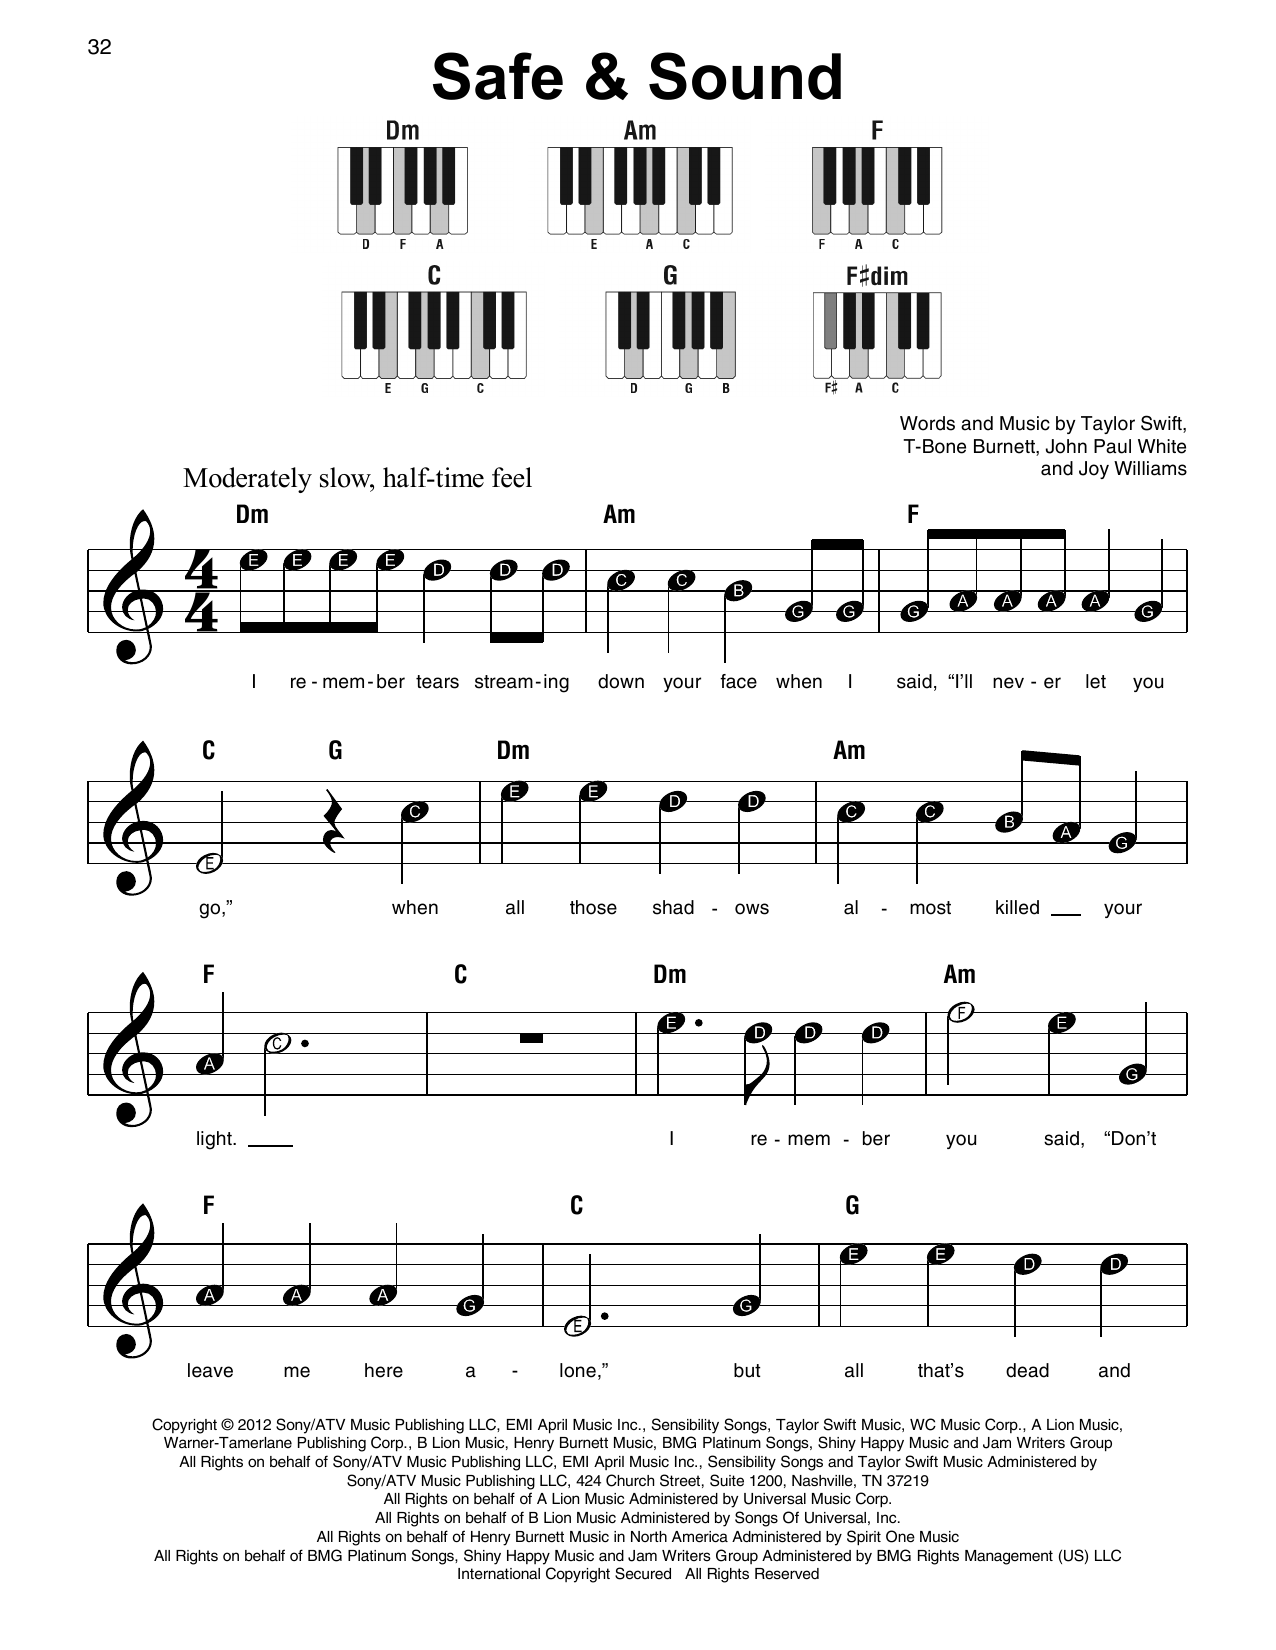 Taylor Swift Safe Sound Feat The Civil Wars From The Hunger Games Sheet Music Download Pdf Score 196177